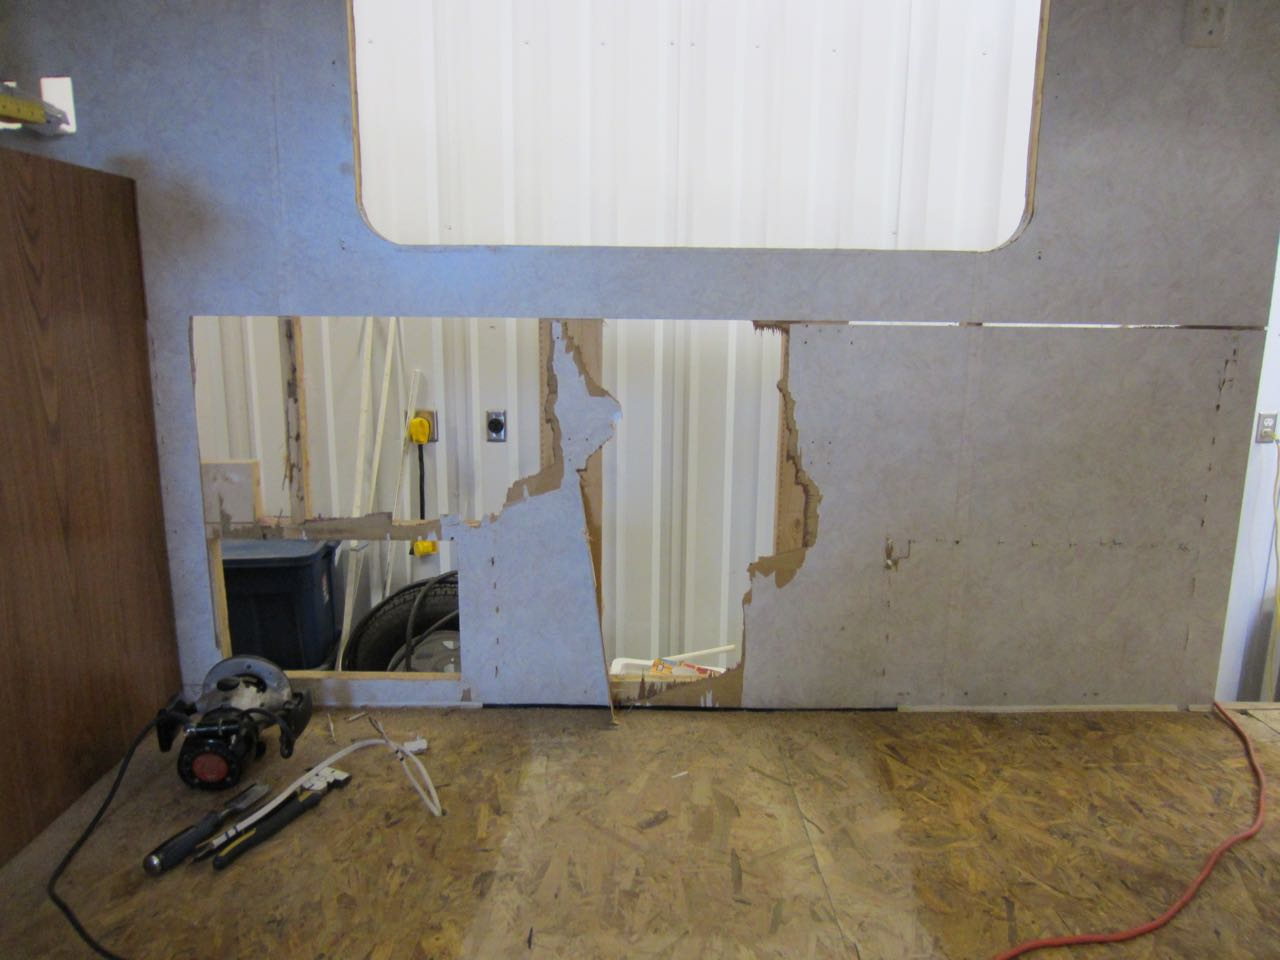 Some chunks of the walls had to be removed because the dinette was stapled into wall from the outside and the staples were buried deep into the wall. One of the holes is where there used to be a compartment.